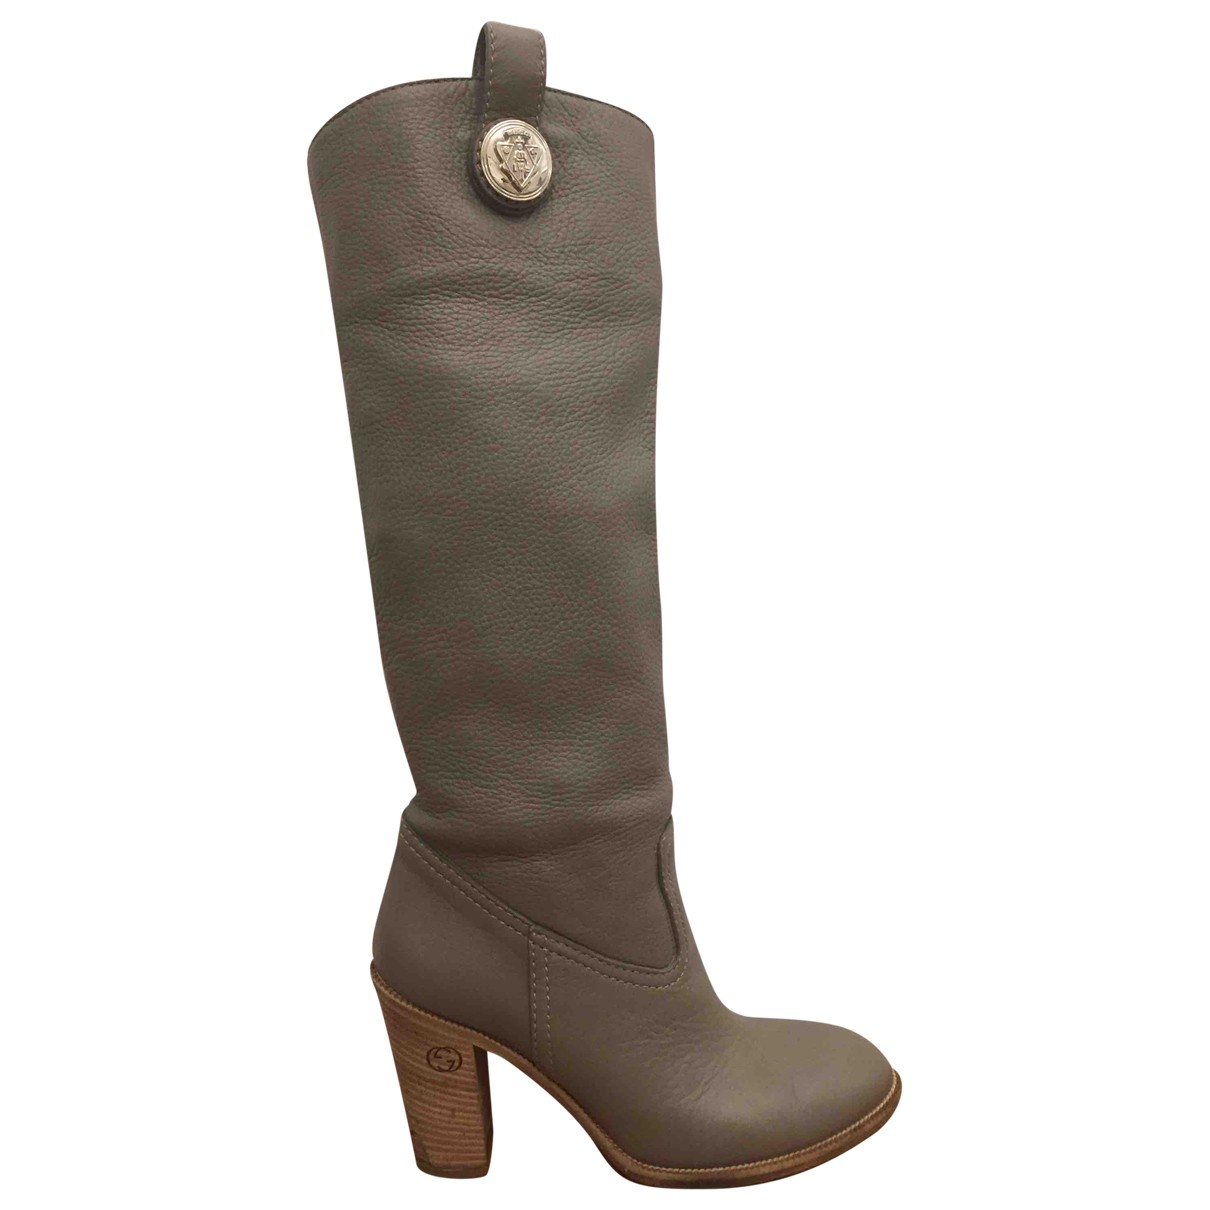 Gucci N Grey Leather Boots for Women 38 IT